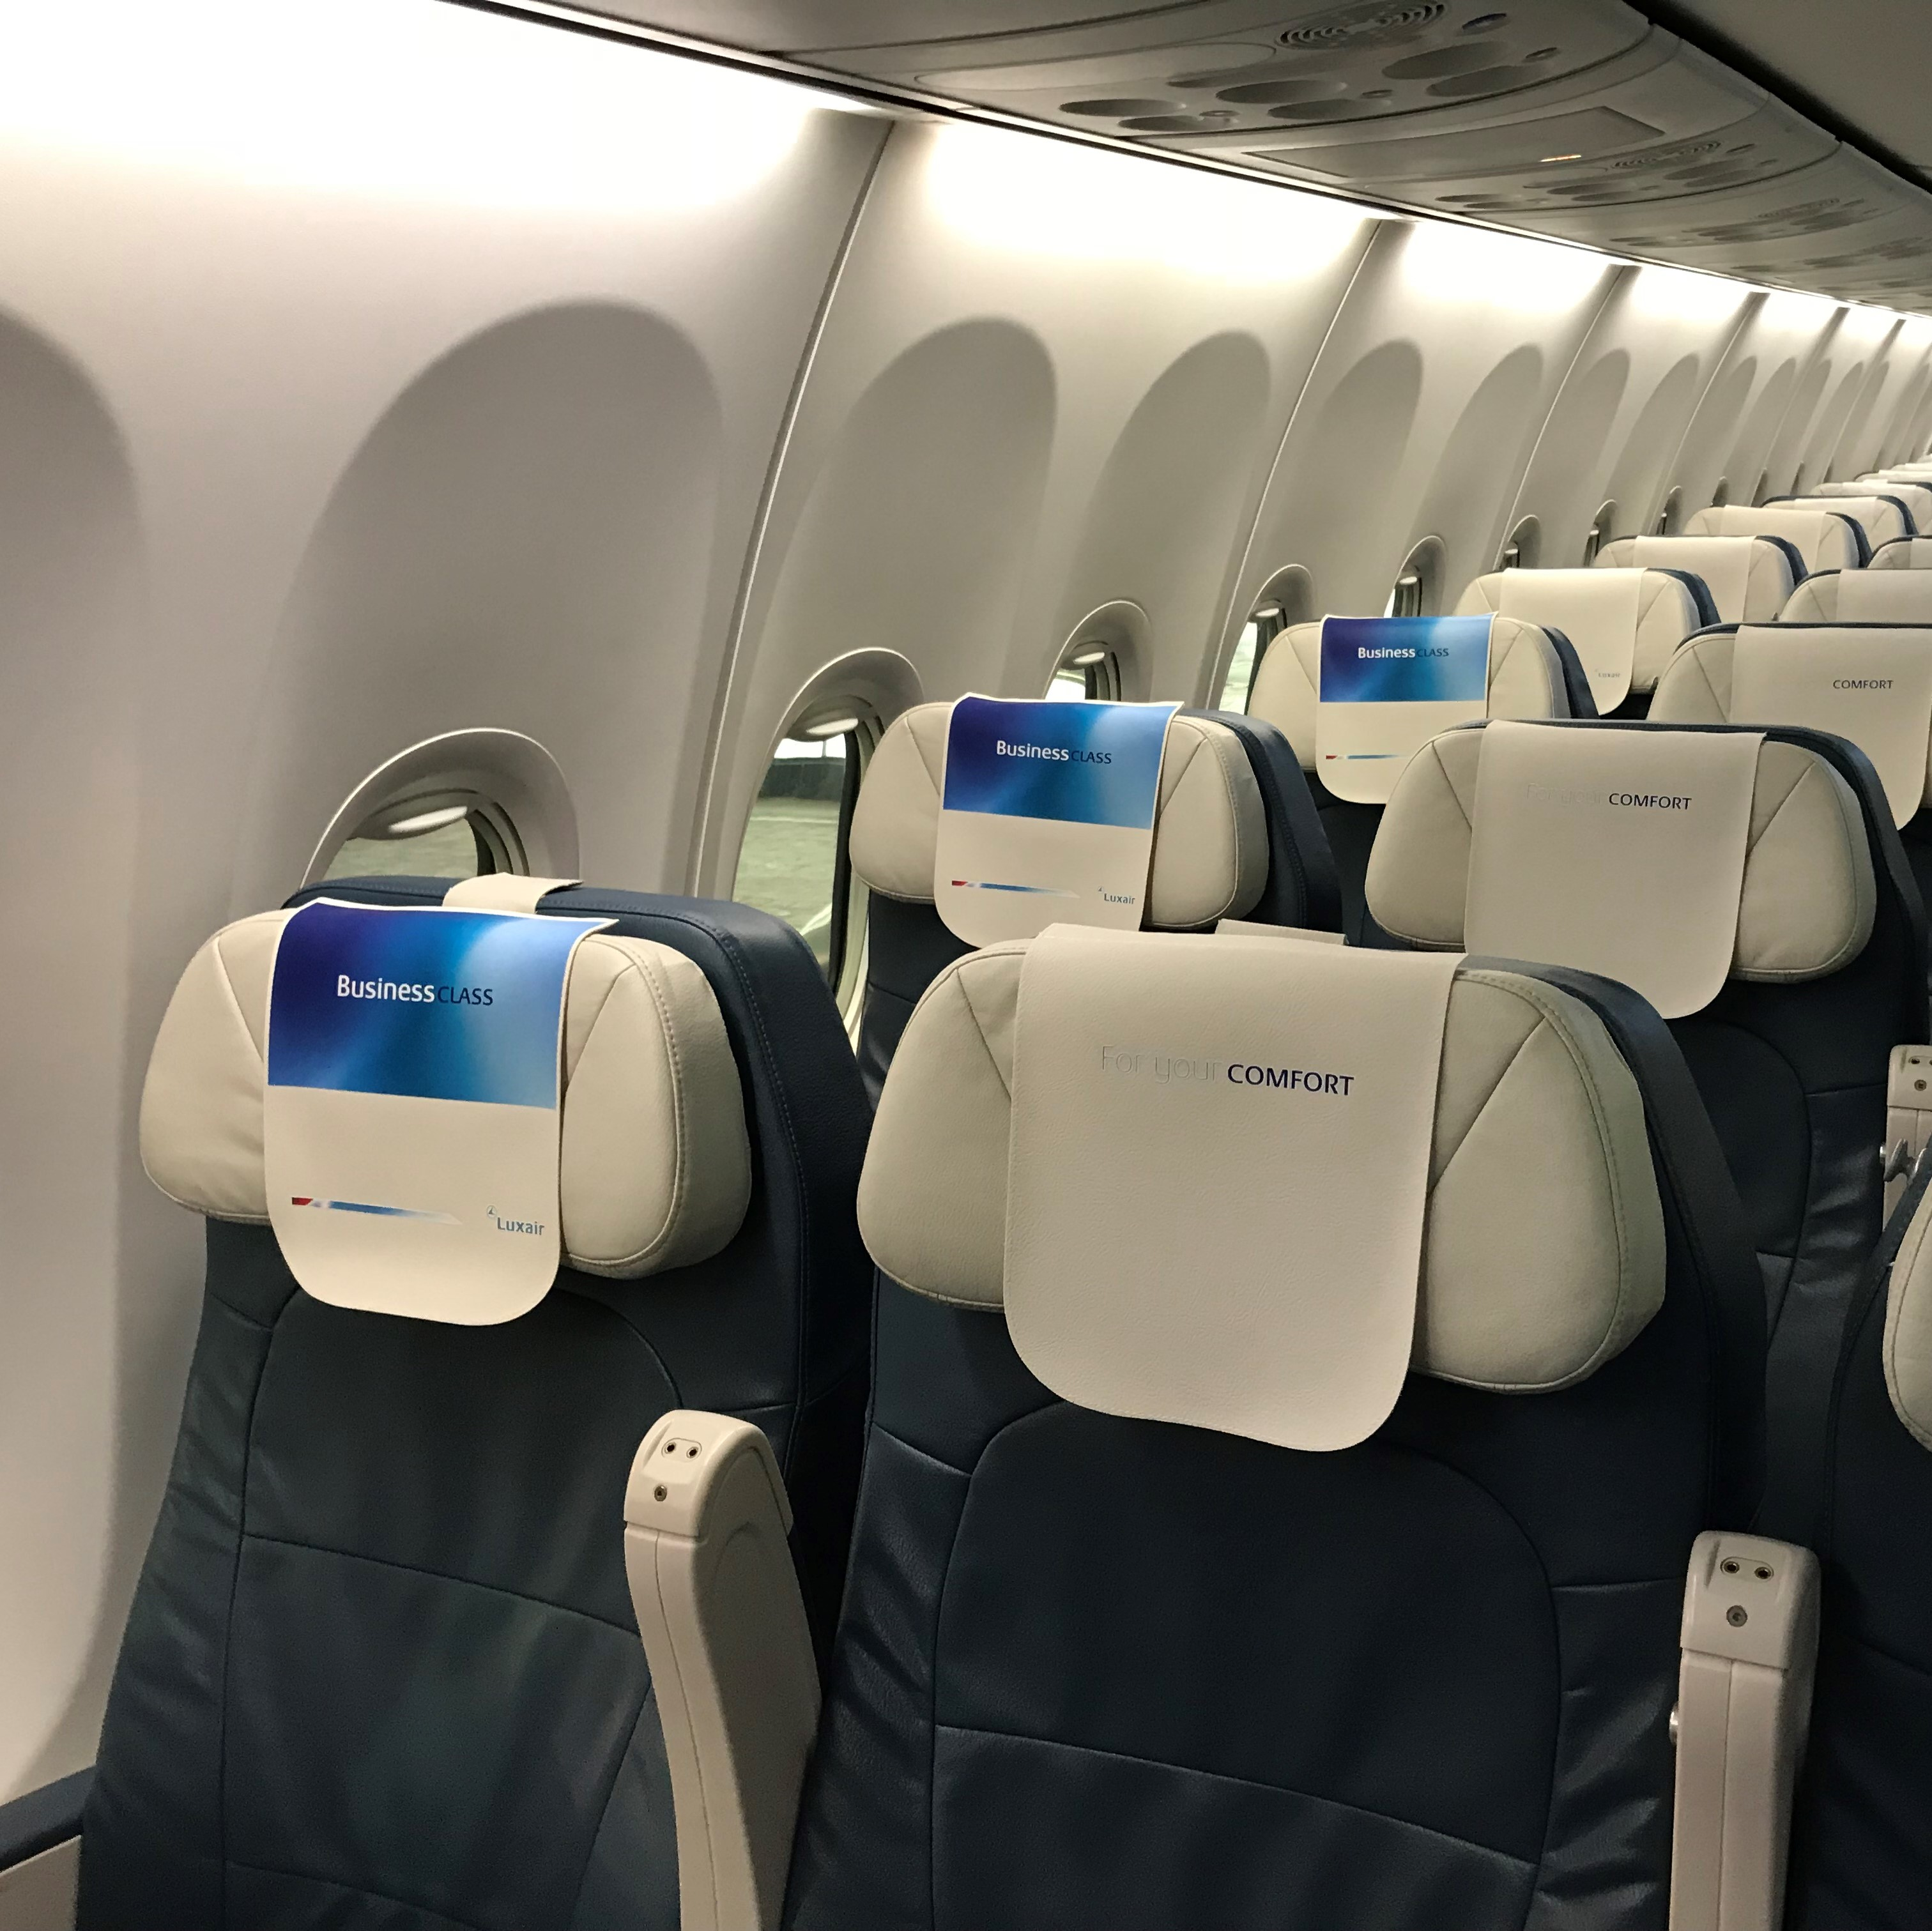 Illustration of: New Luxair's leatherette headrest covers (antimacassars)